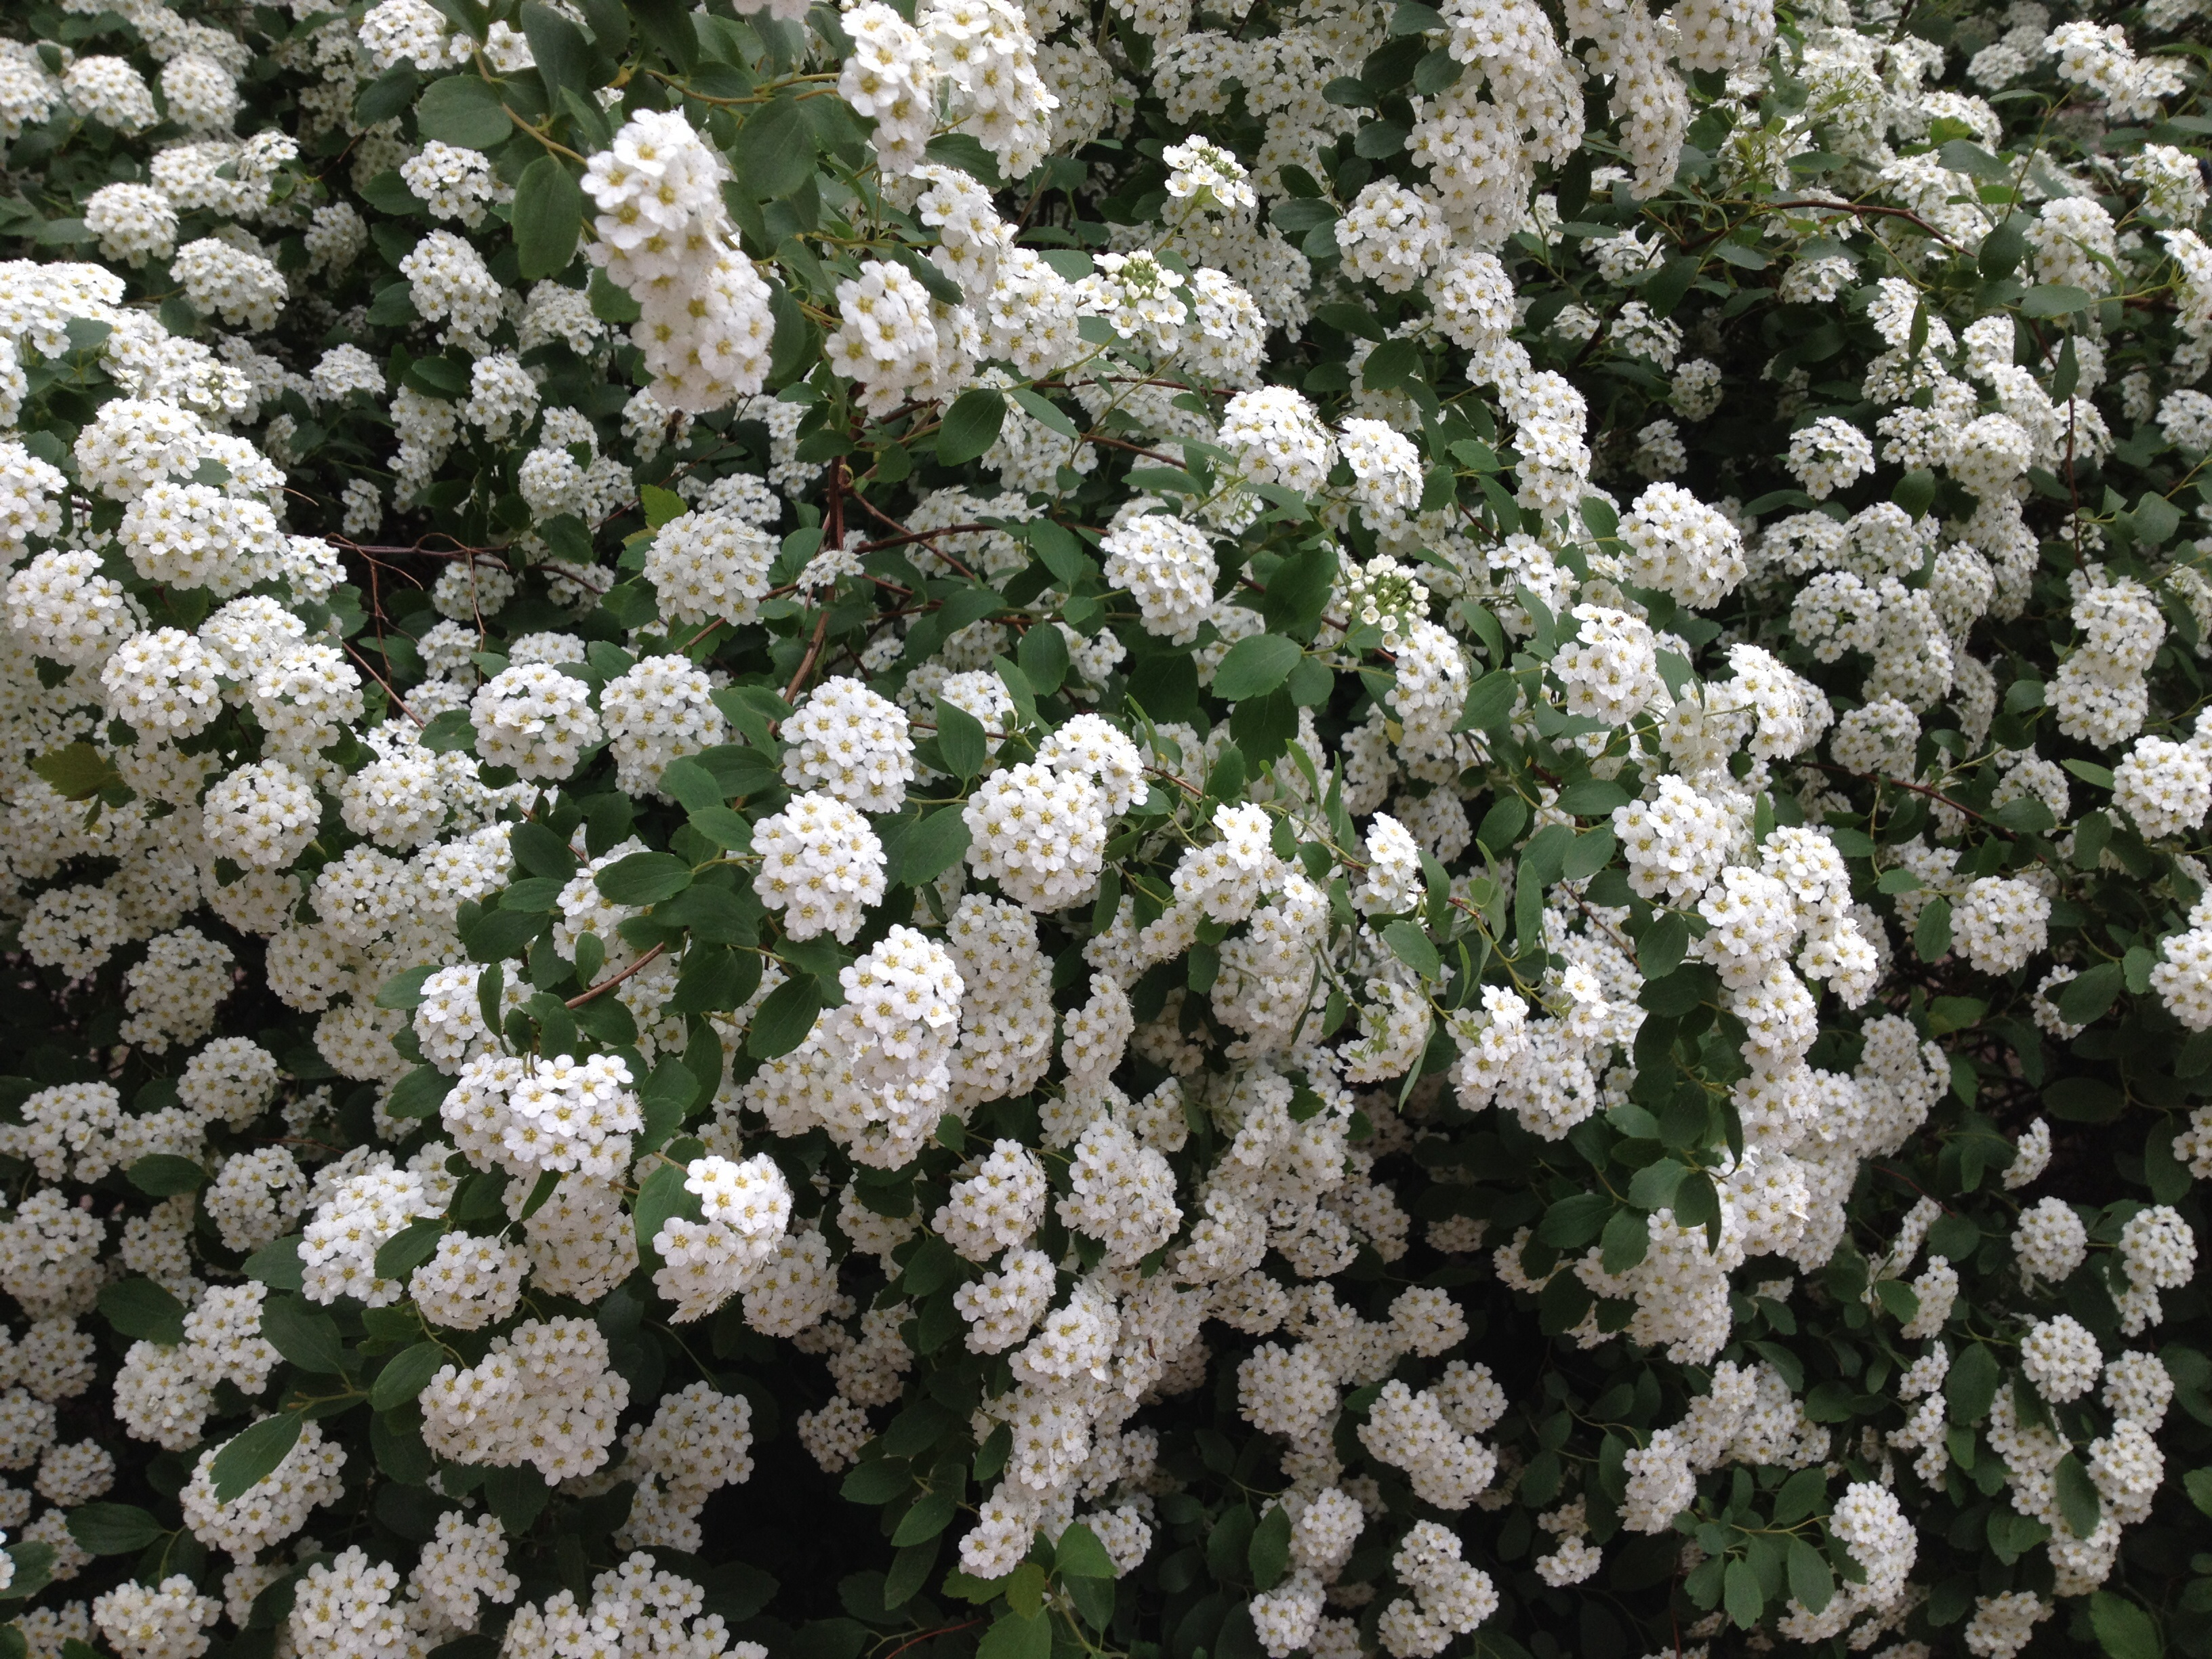 What's the name of this bush with white flowers like a bride?